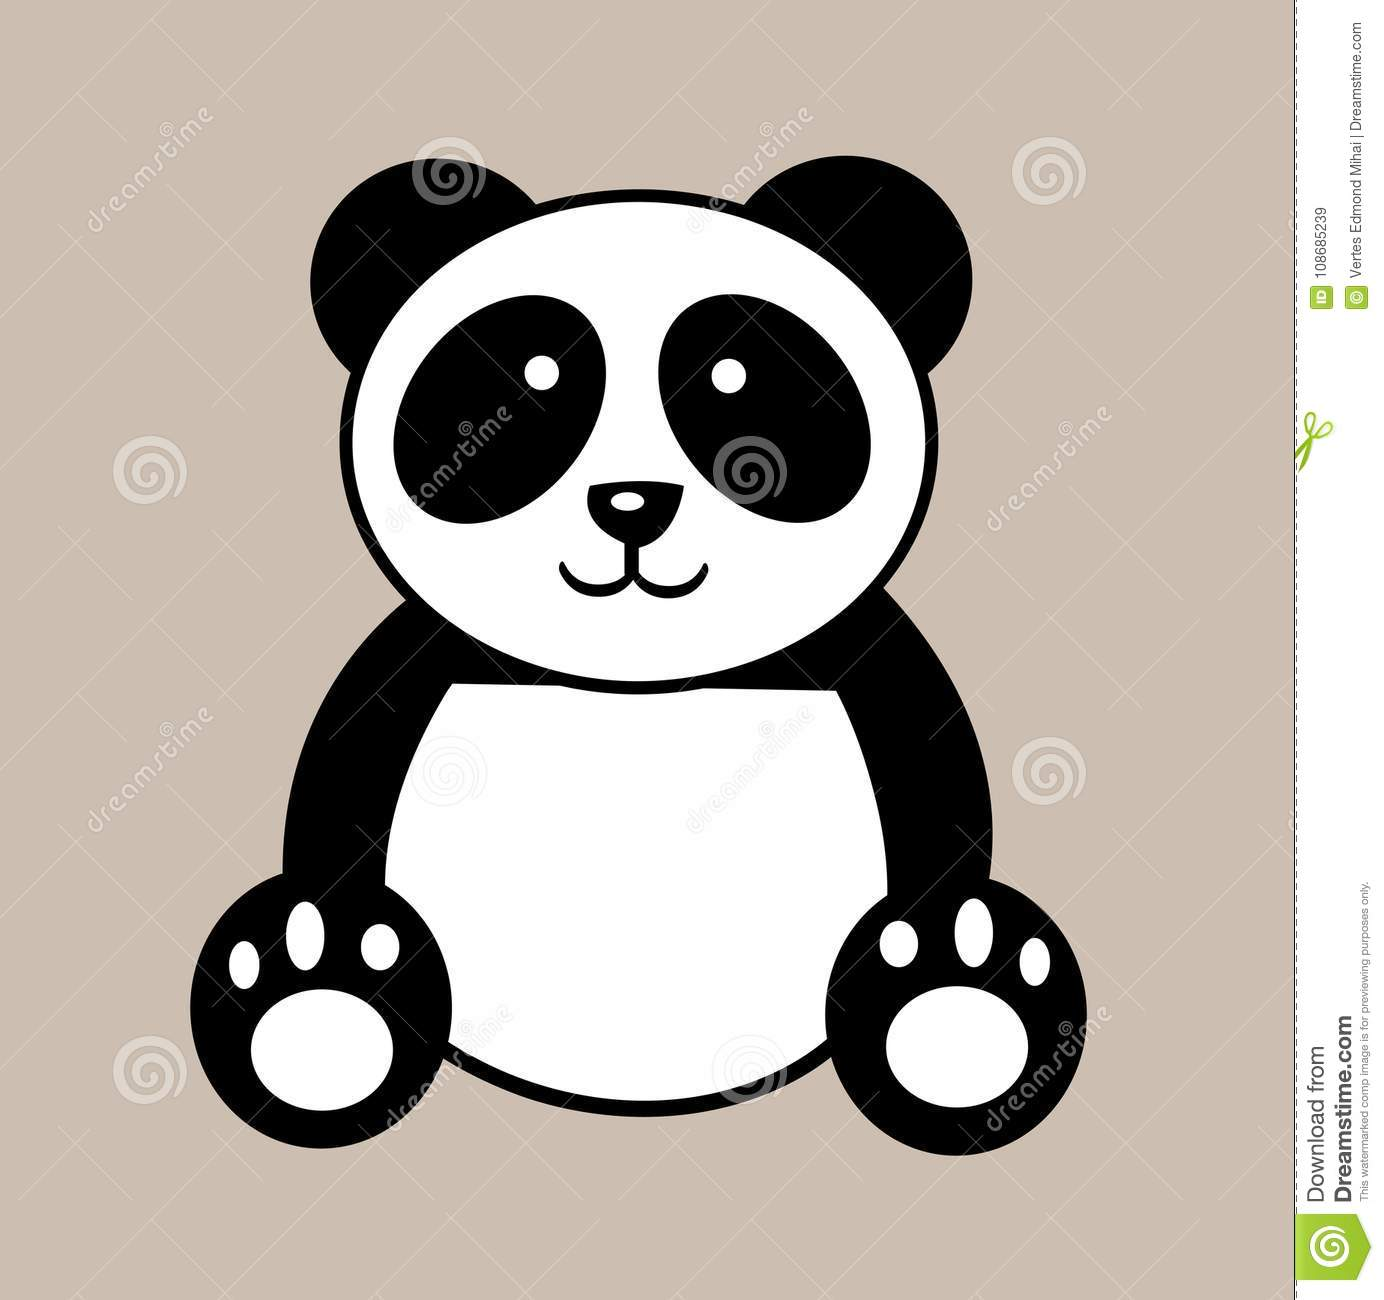 Dessin kawaii fille panda - Comment dessiner un elephant facilement ...